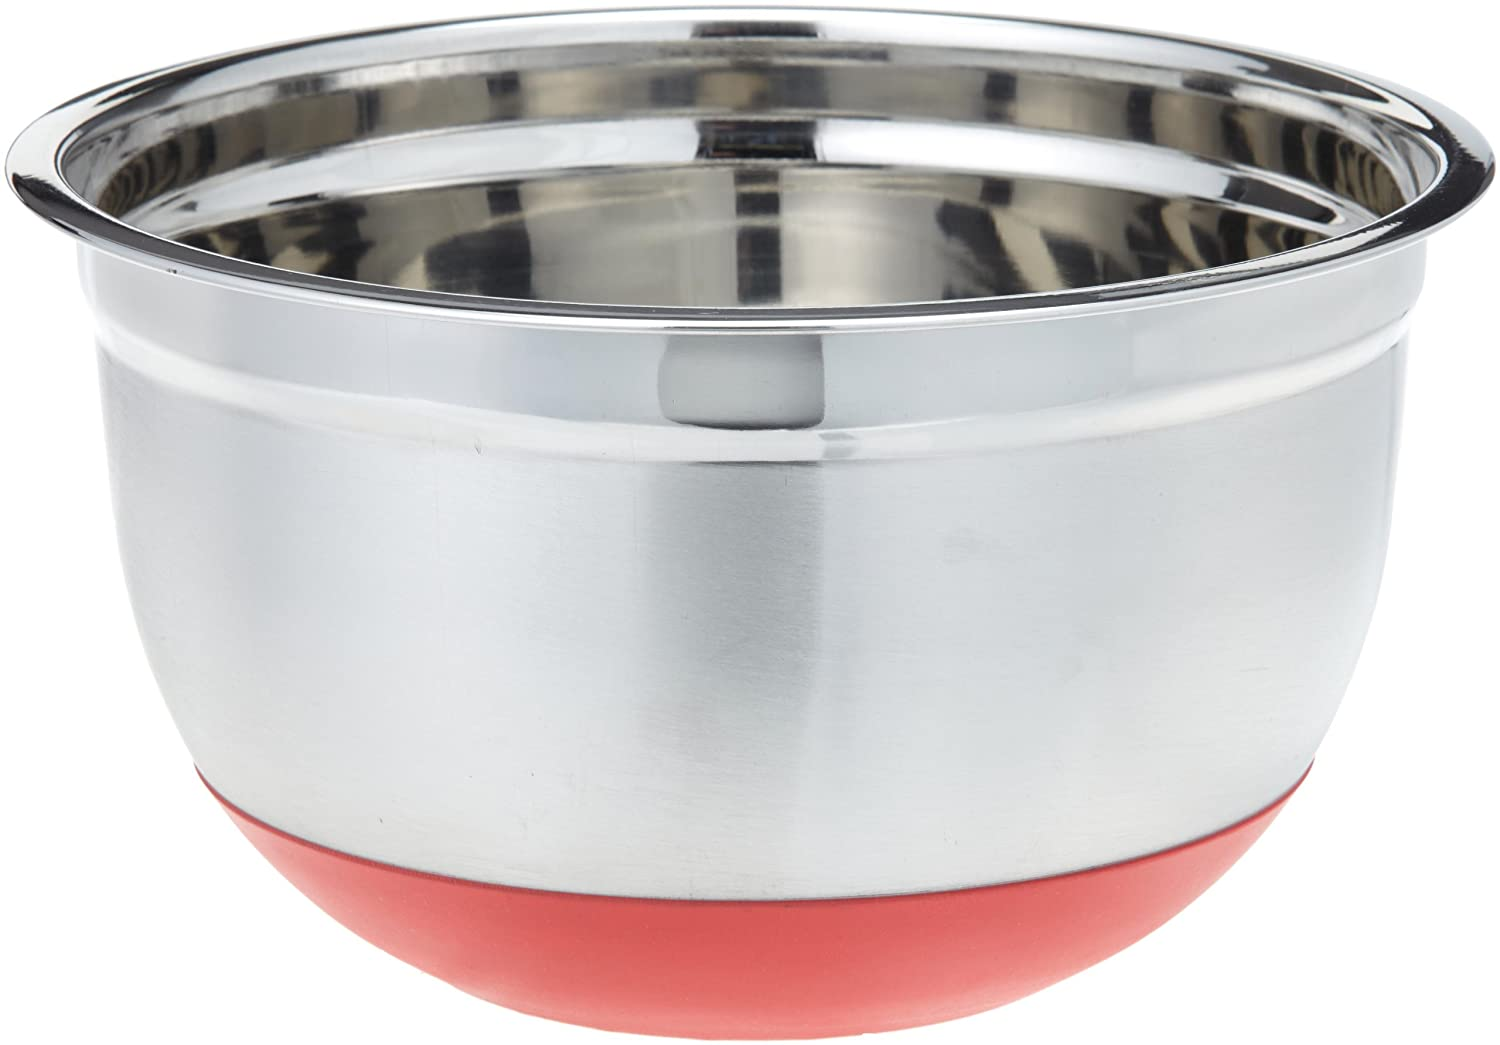 Superieur Amazon.com: ExcelSteel 298 5 Quart Stainless Steel Non Skid Base Mixing Bowl:  Kitchen U0026 Dining